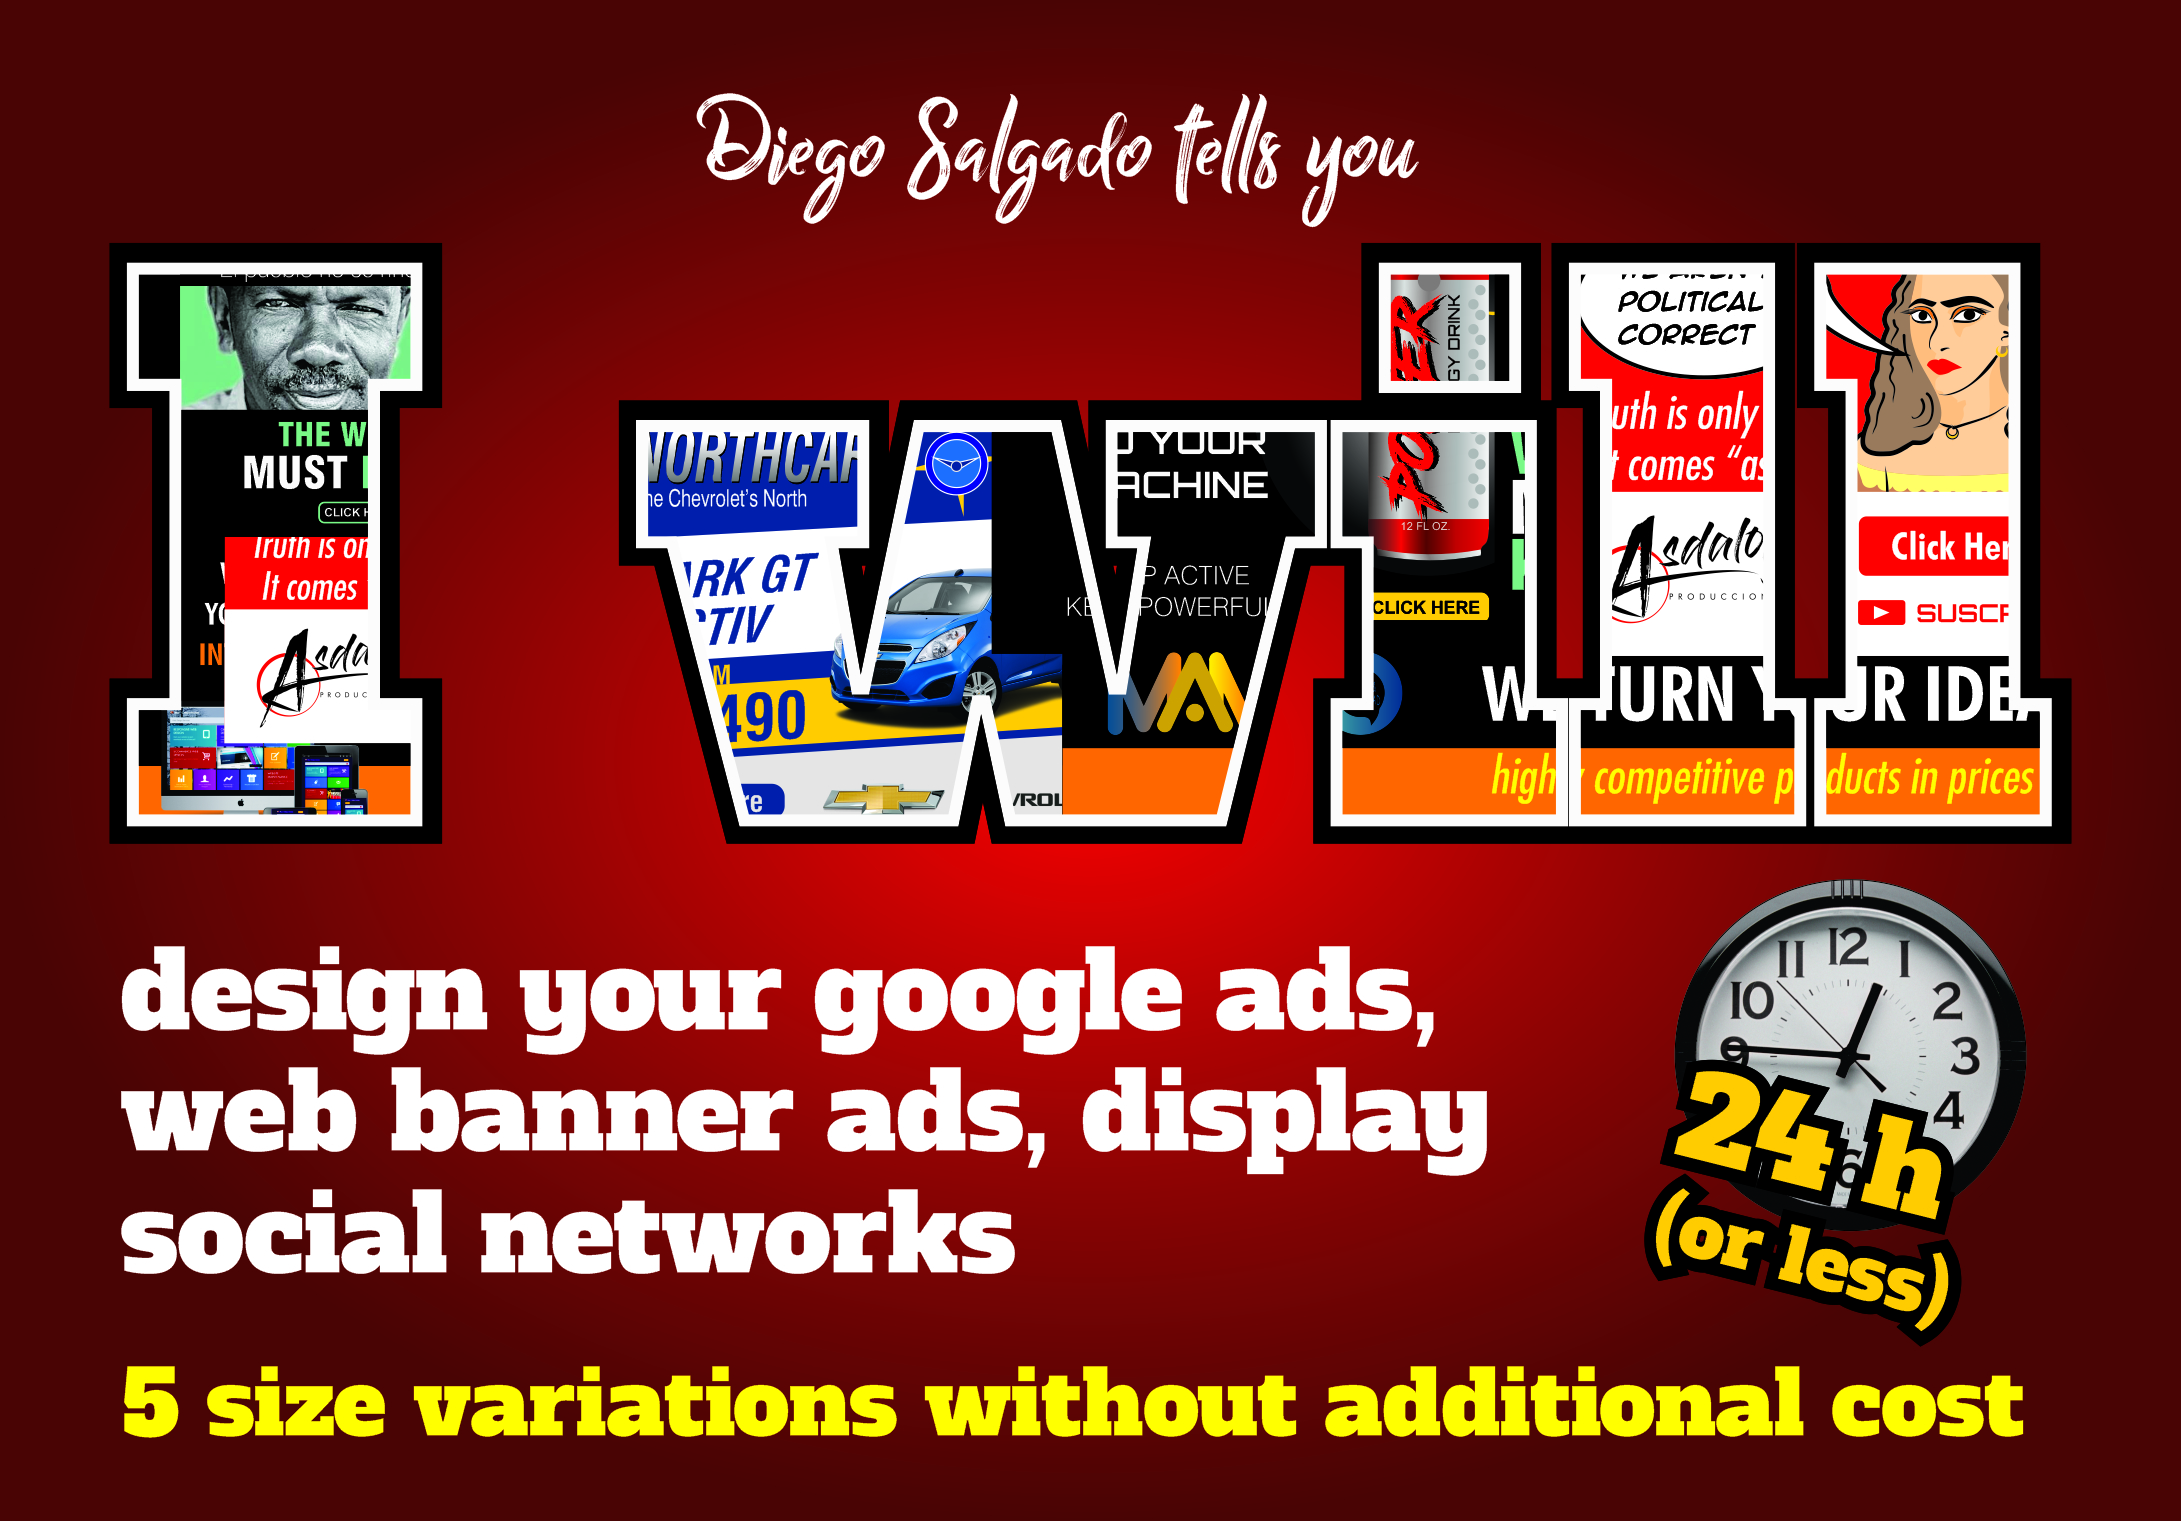 Design google ads,  web banner ads,  social networks